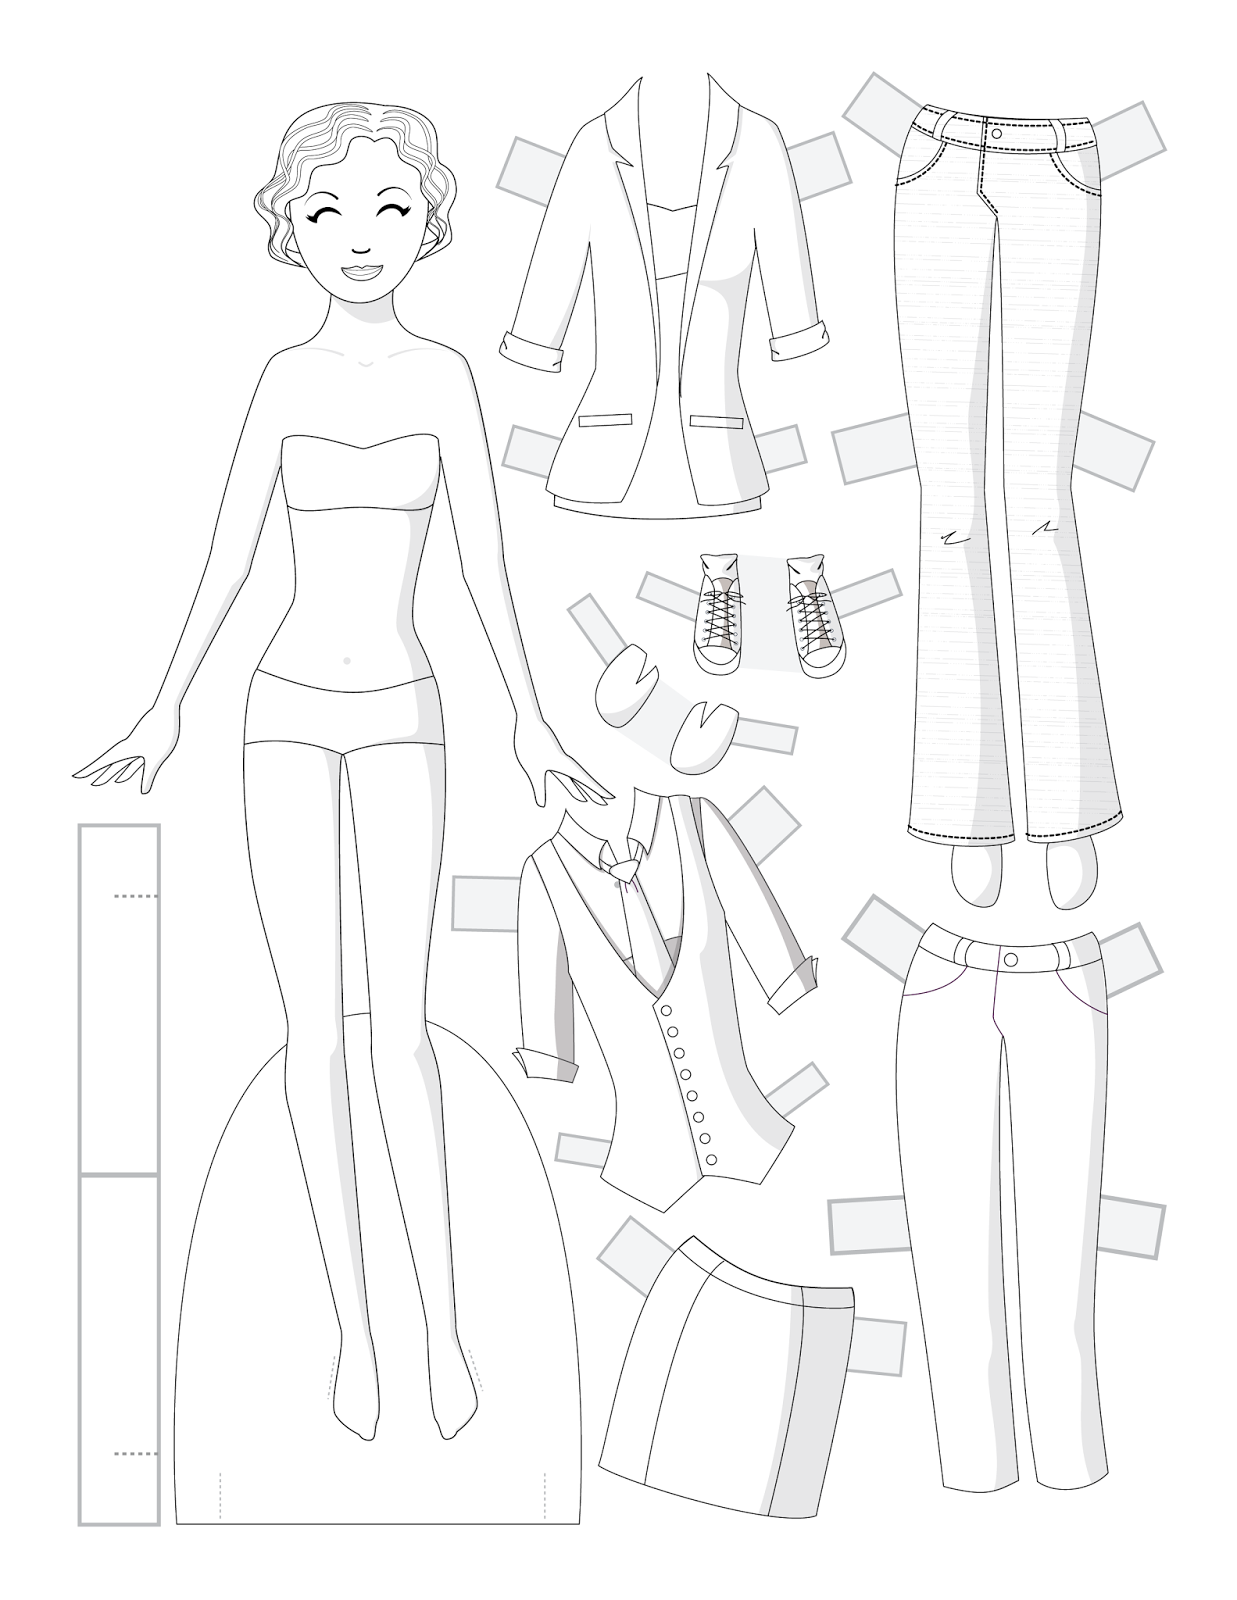 Pigs paper dolls 2 / Pigs / Kids printables coloring pages